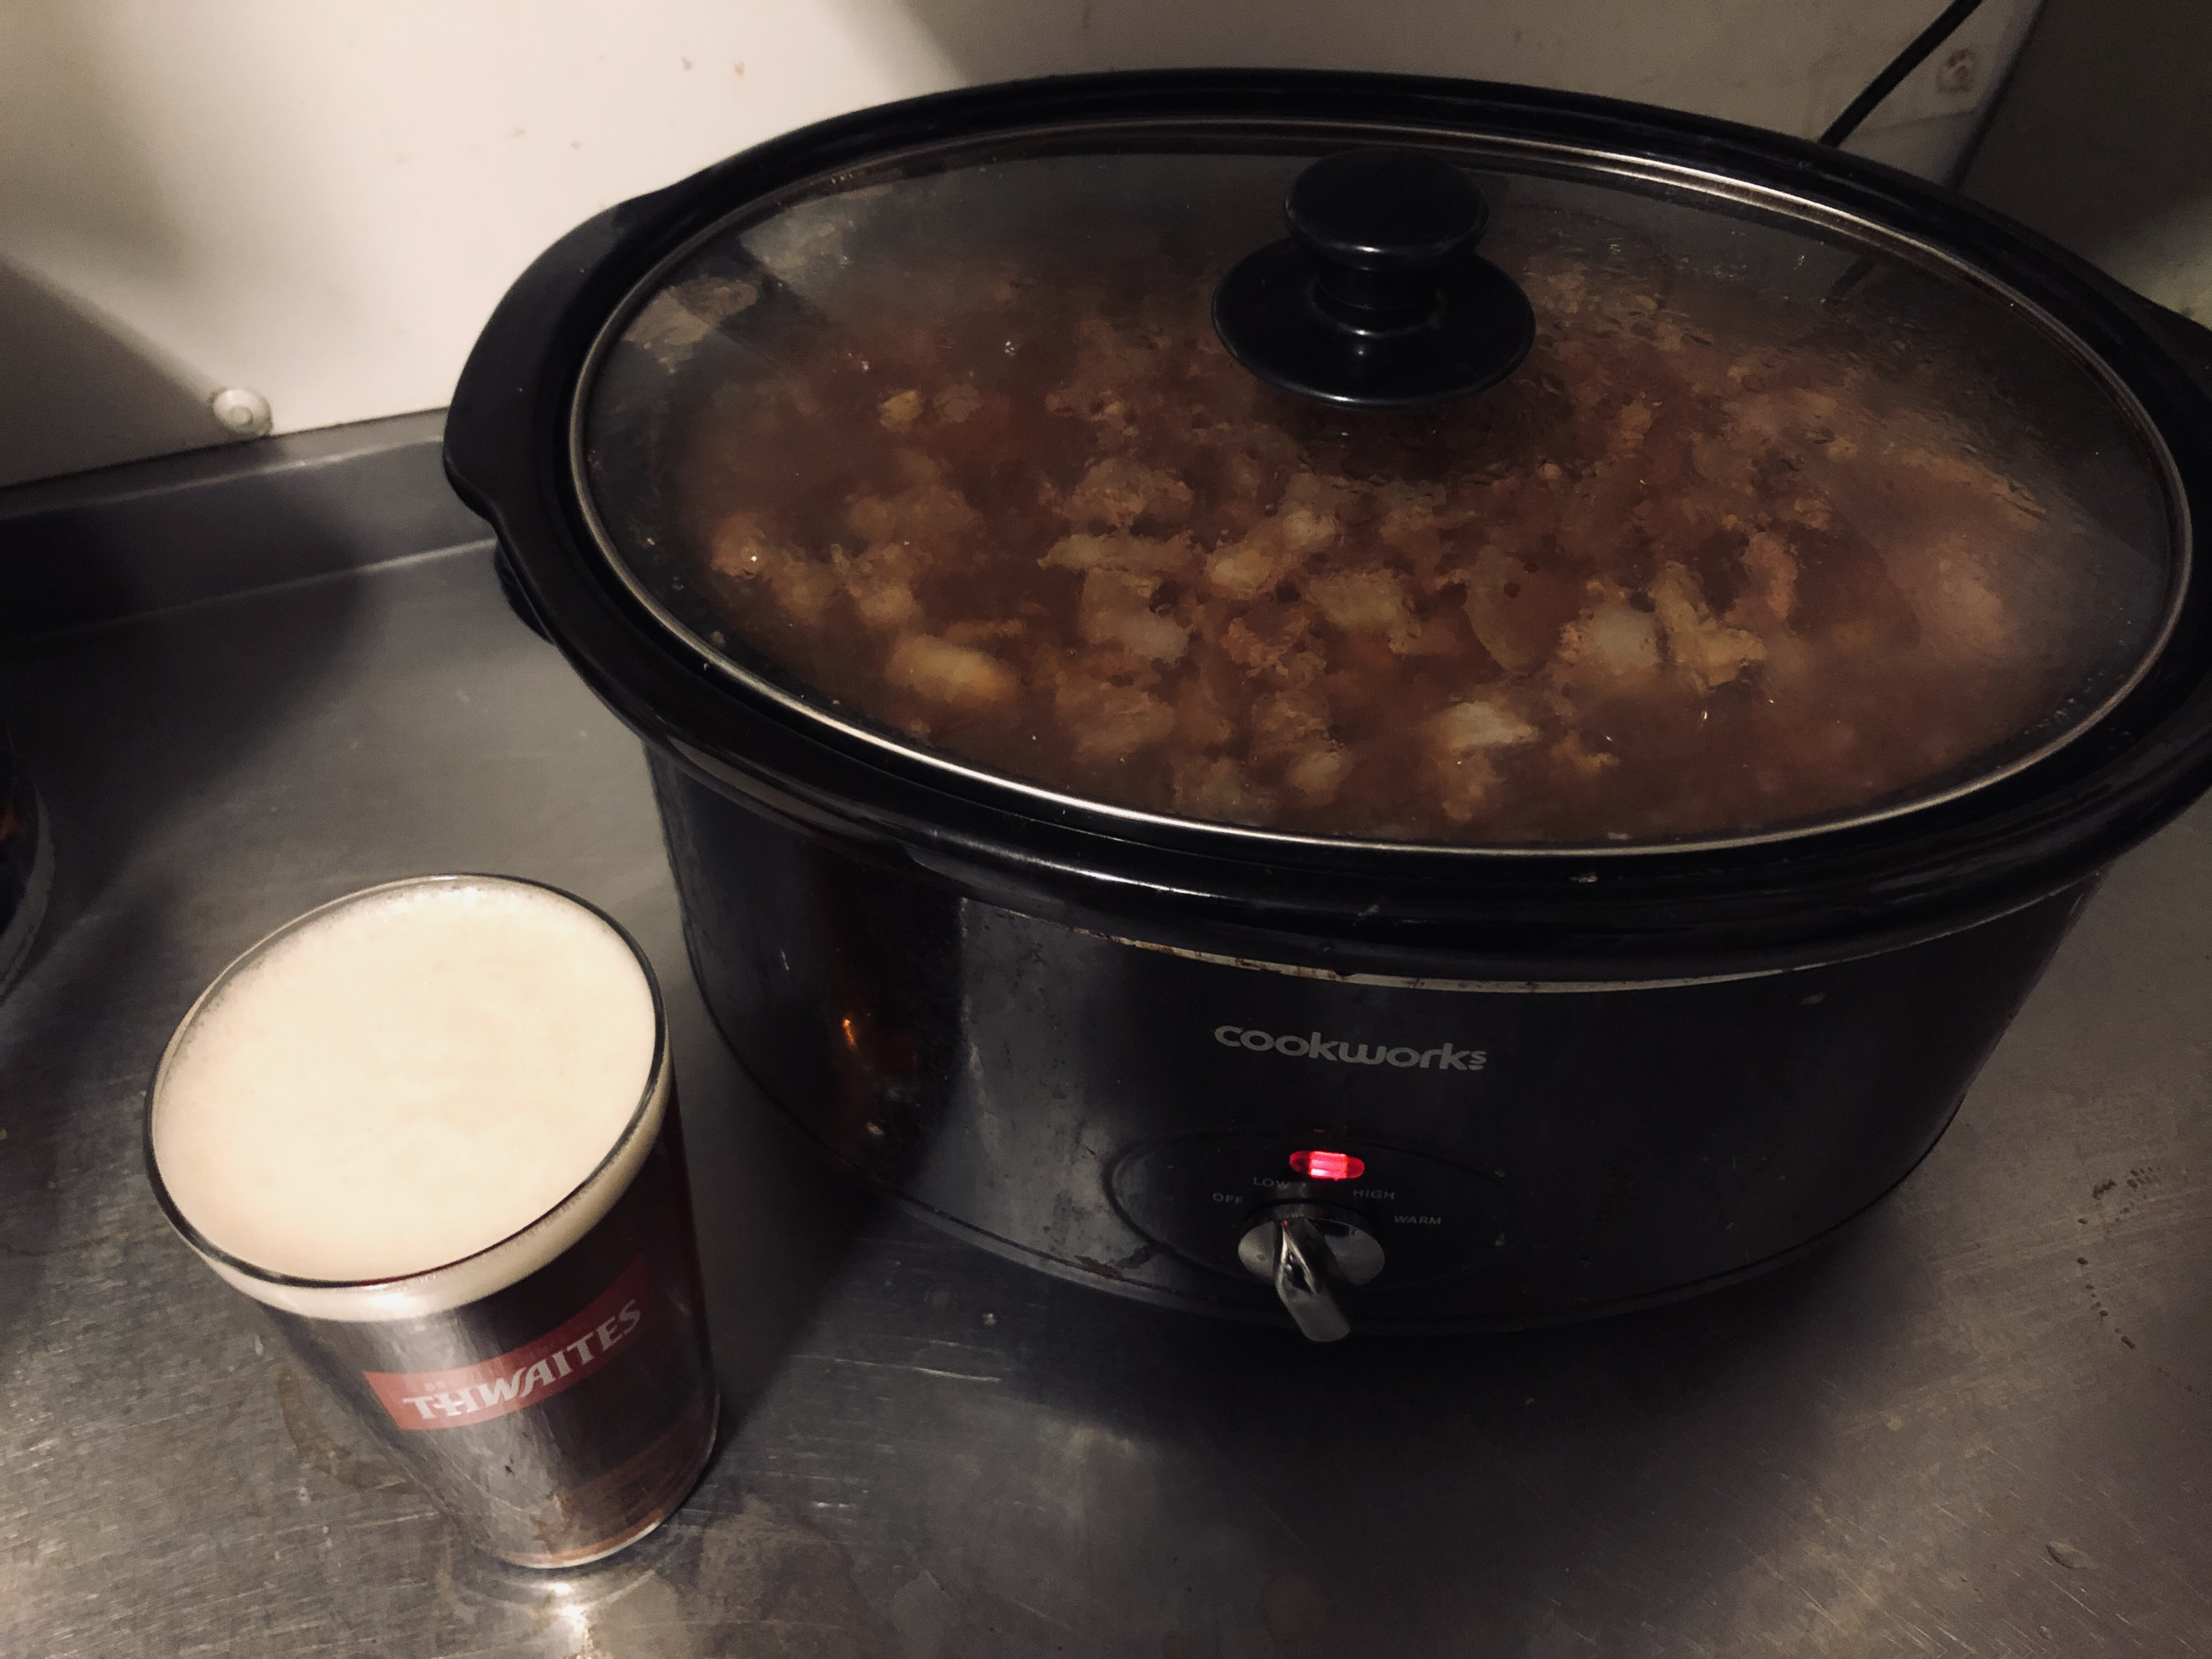 Fresh batch of our signature Thwaites' Steak & Ale bubbling in the pot